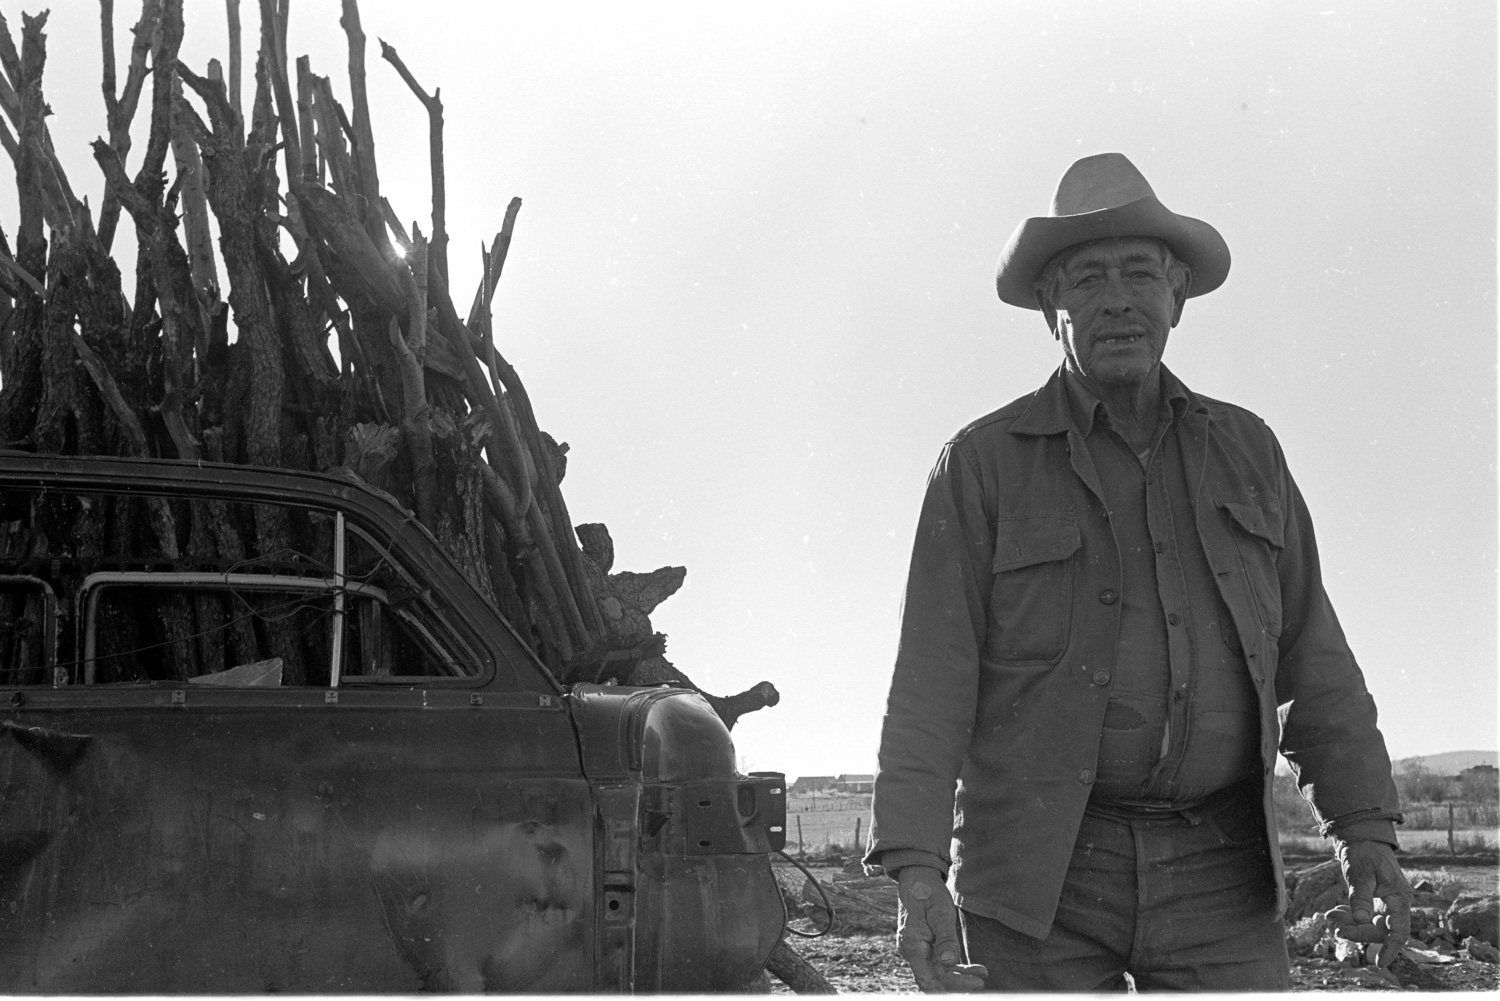 This farmer's face is as weather-beaten as the car door leaning against the stack of firewood.